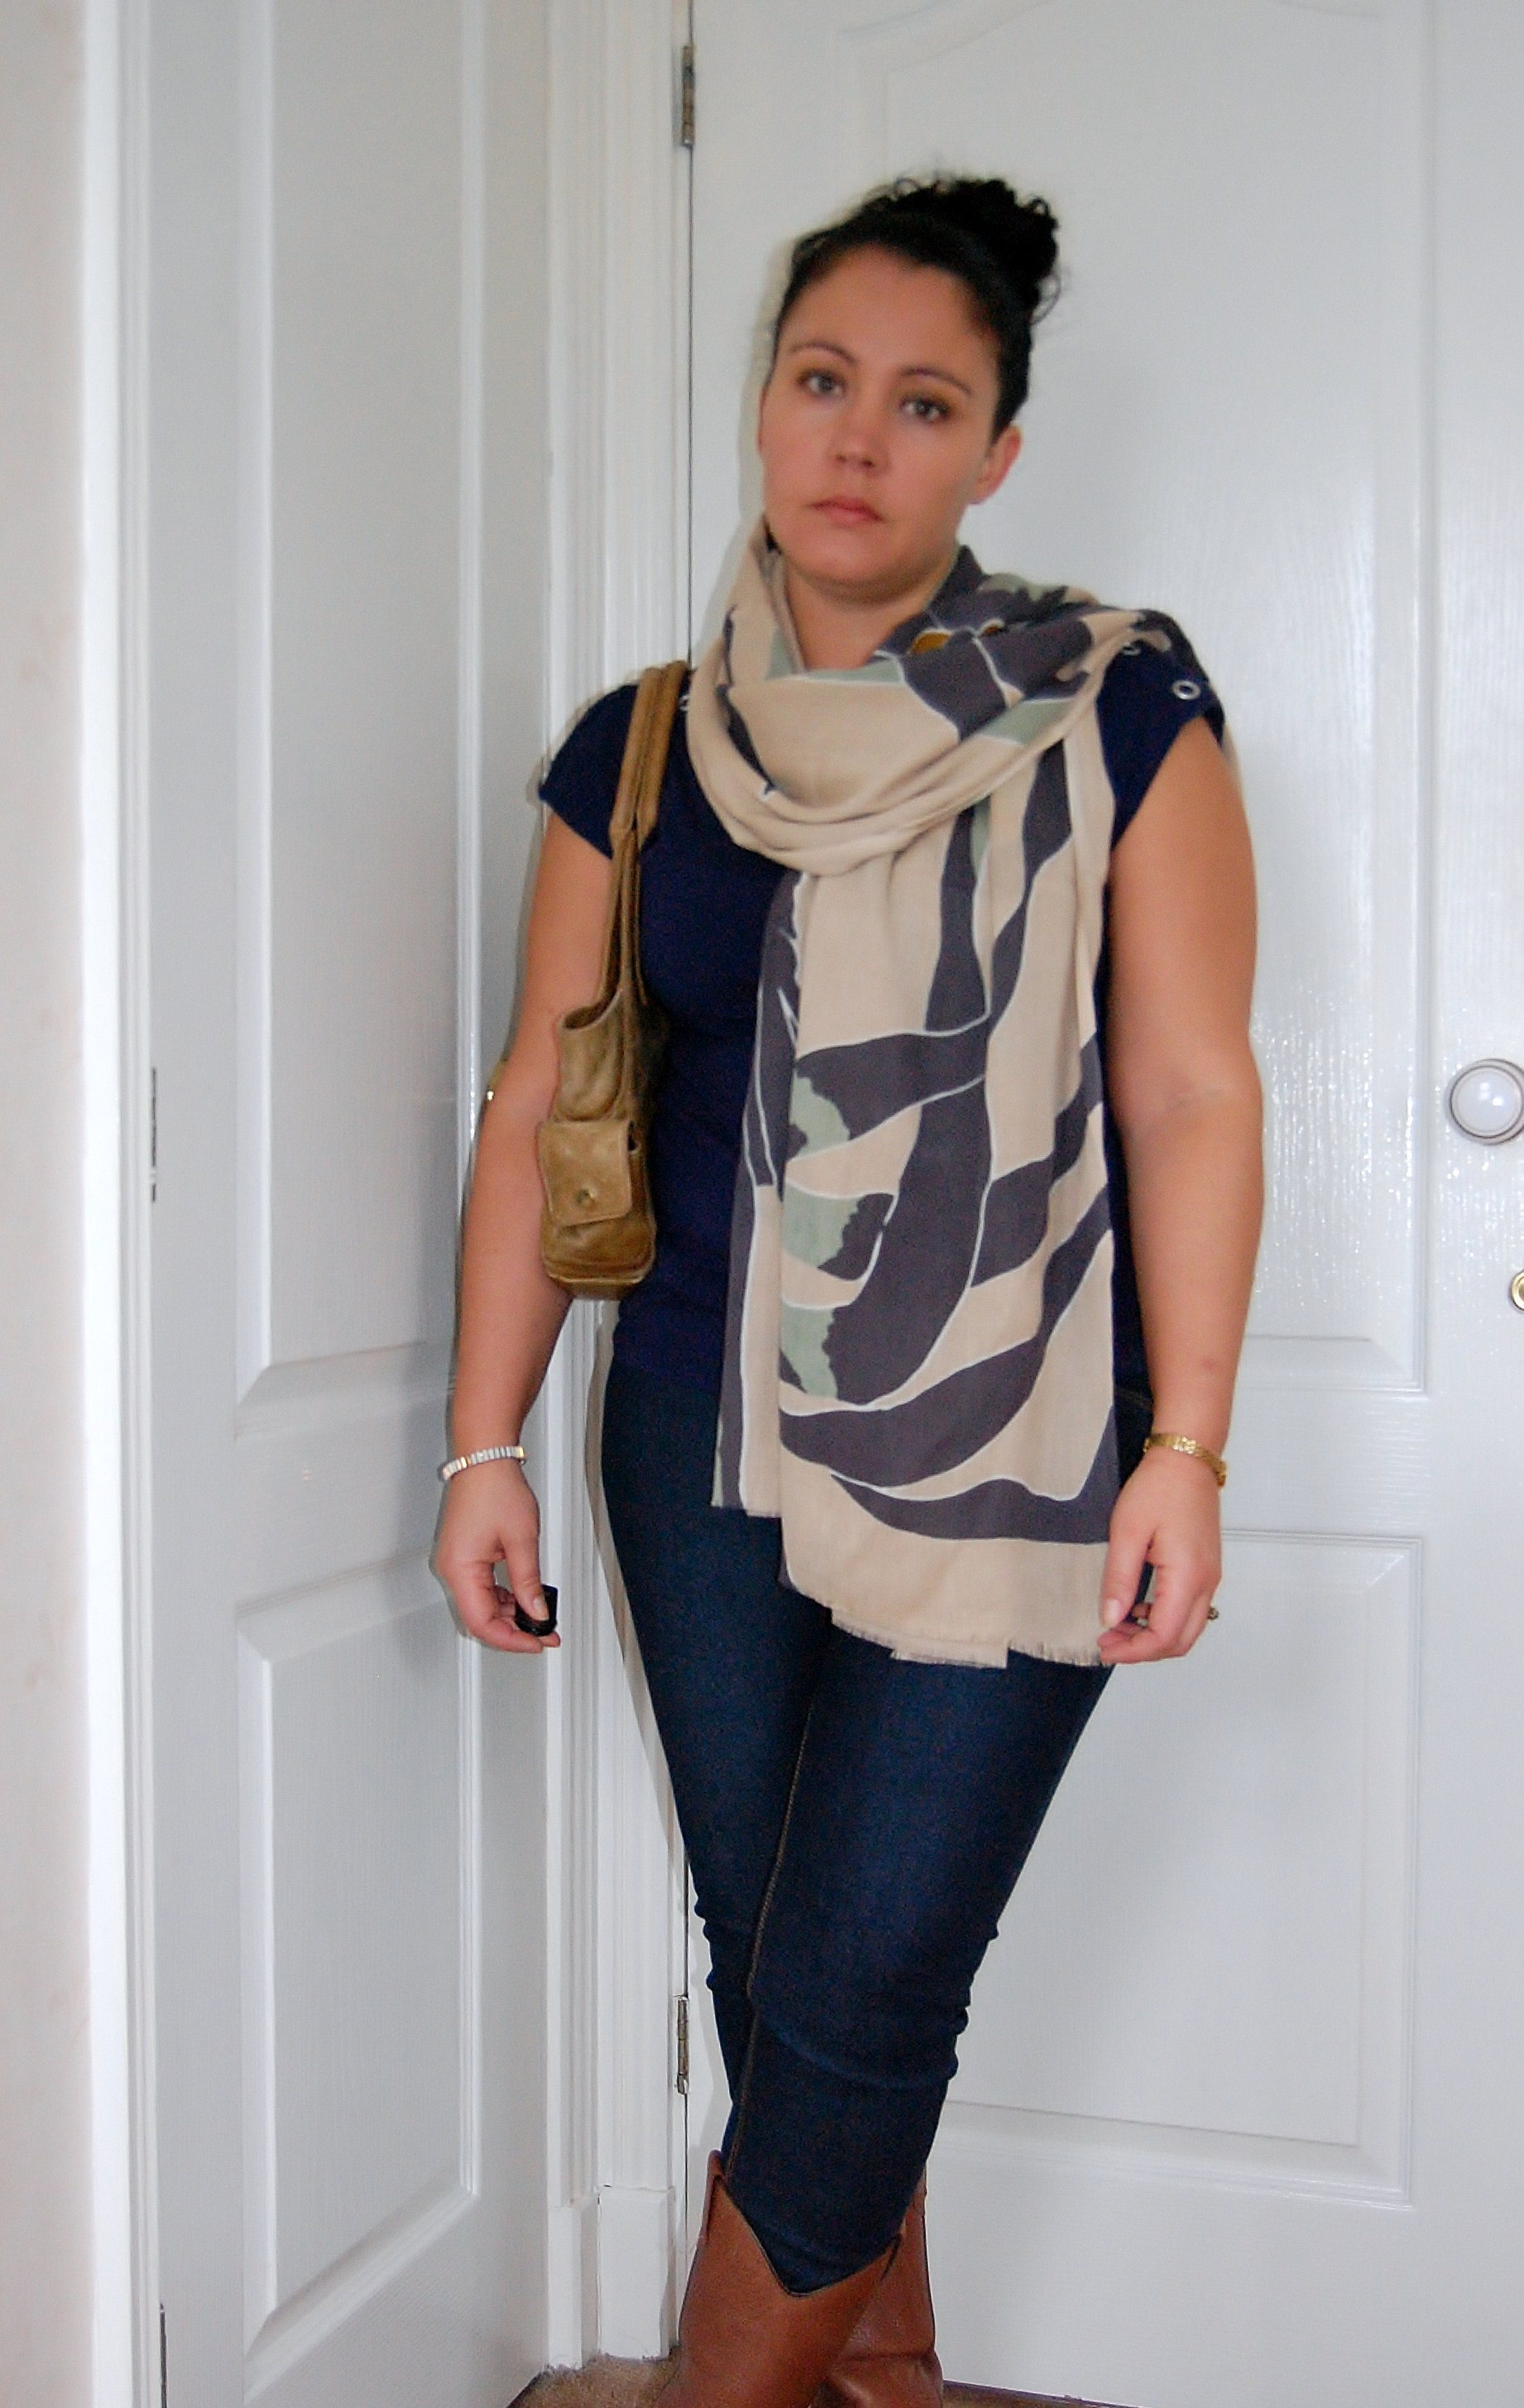 009 Scarf by Elin Kling for Hoss Intropia